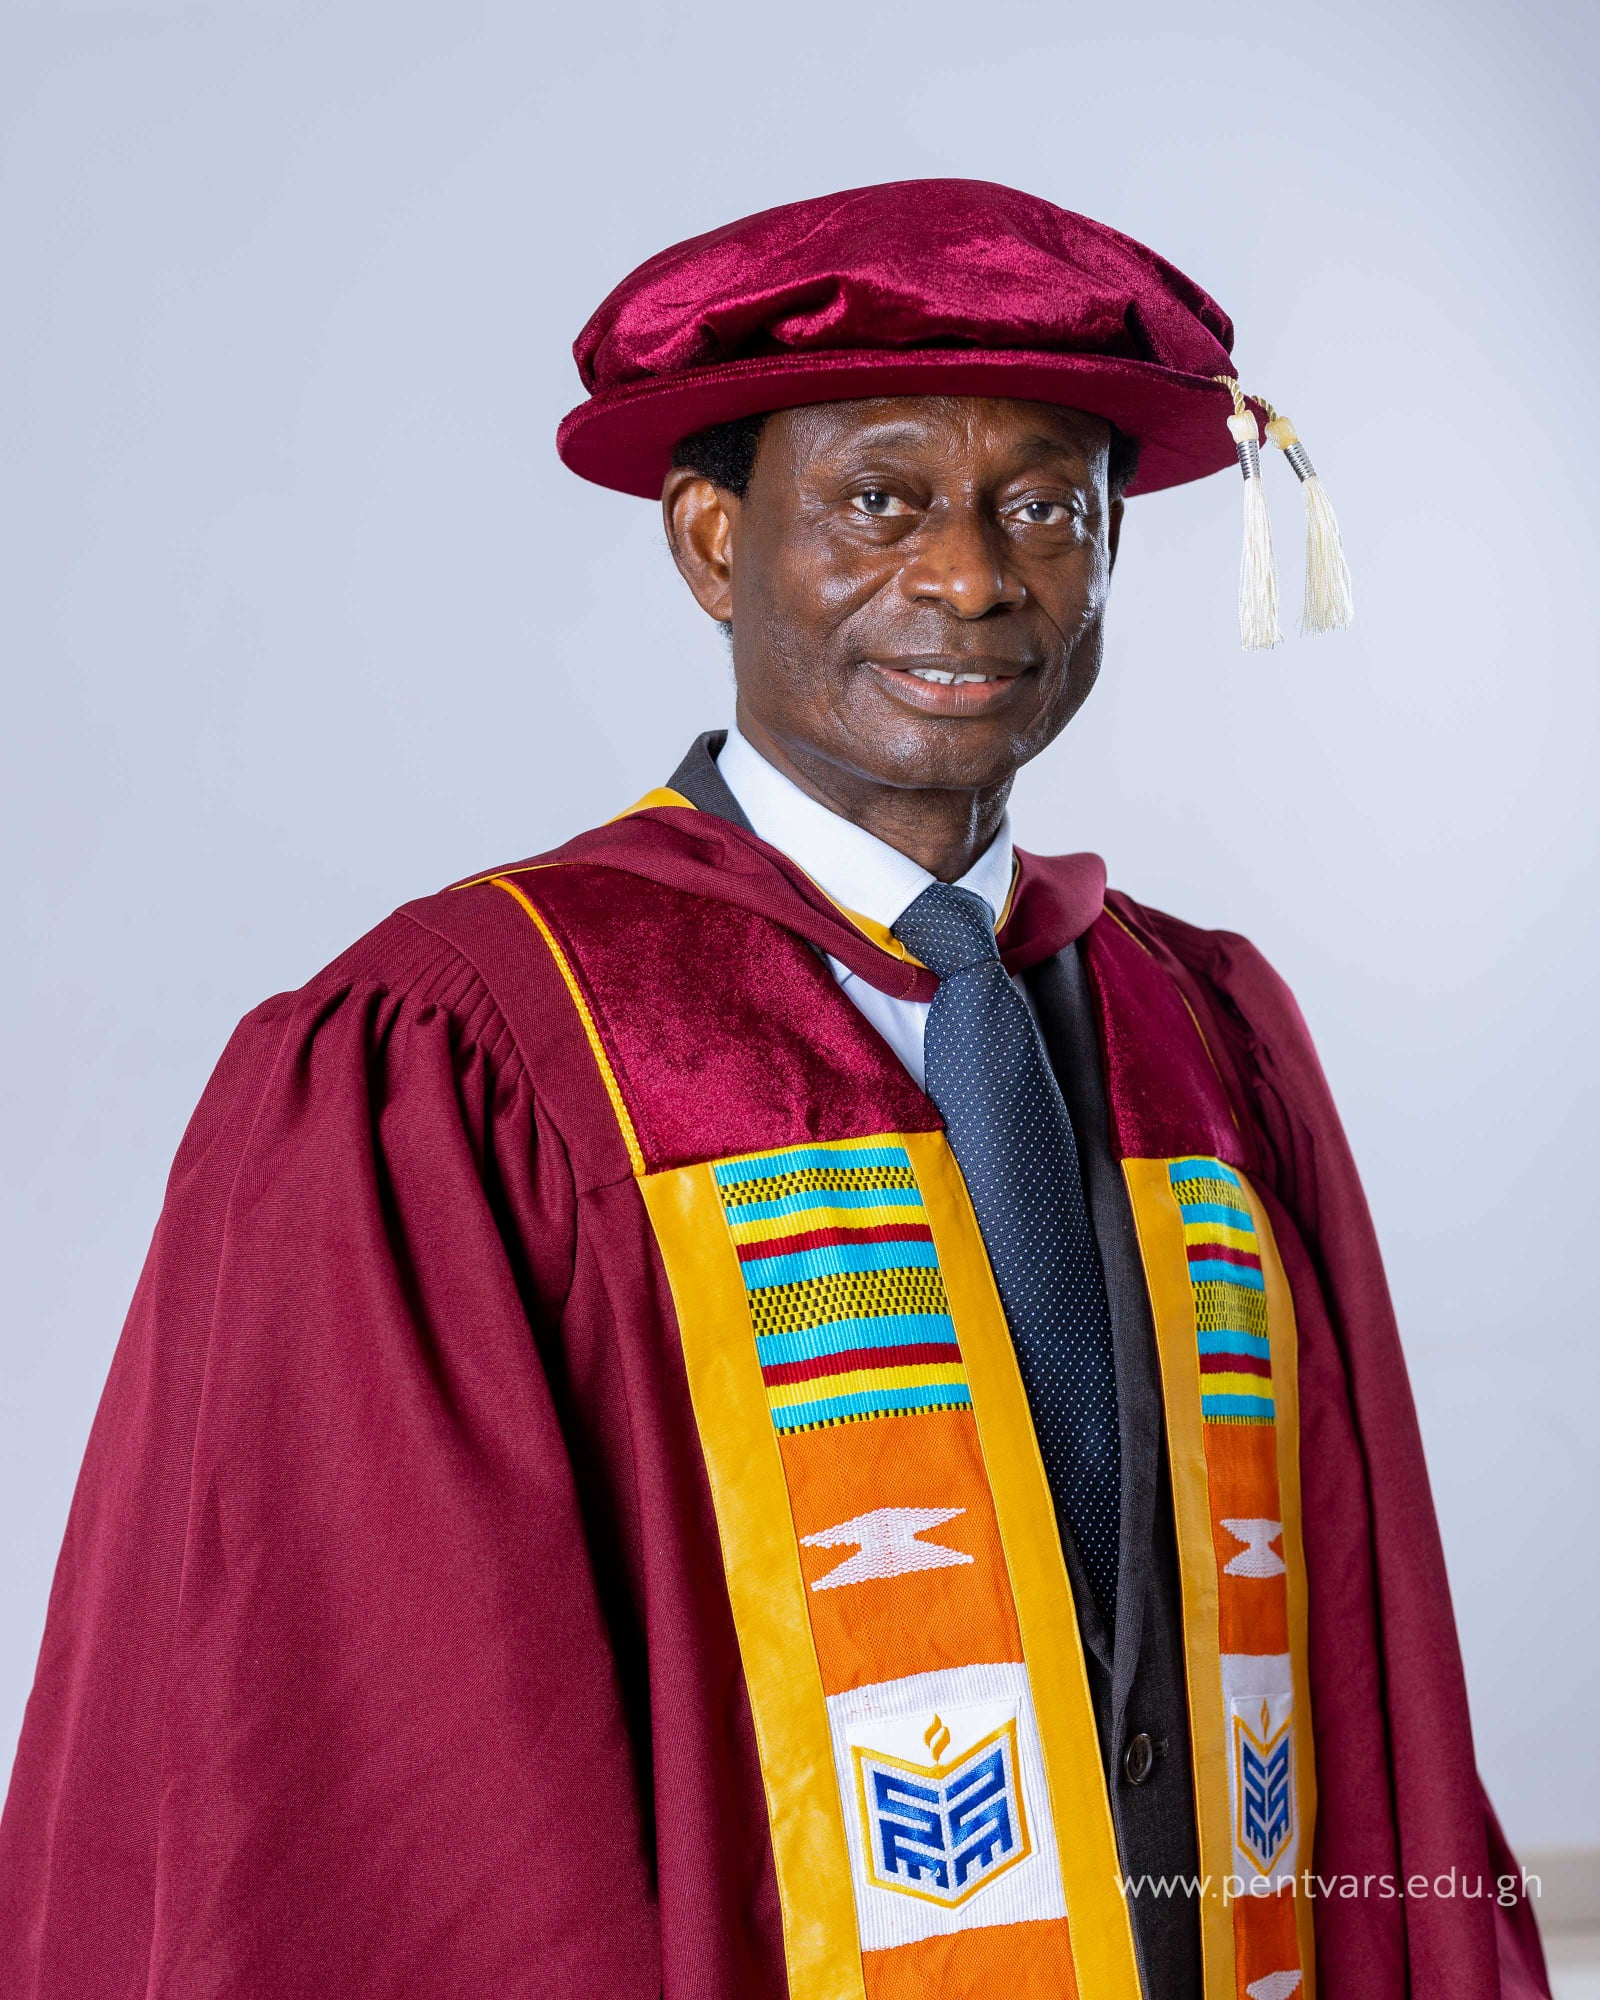 Pentecost University Professor Appointed Chairman, Board of Trustees of National Cathedral Project